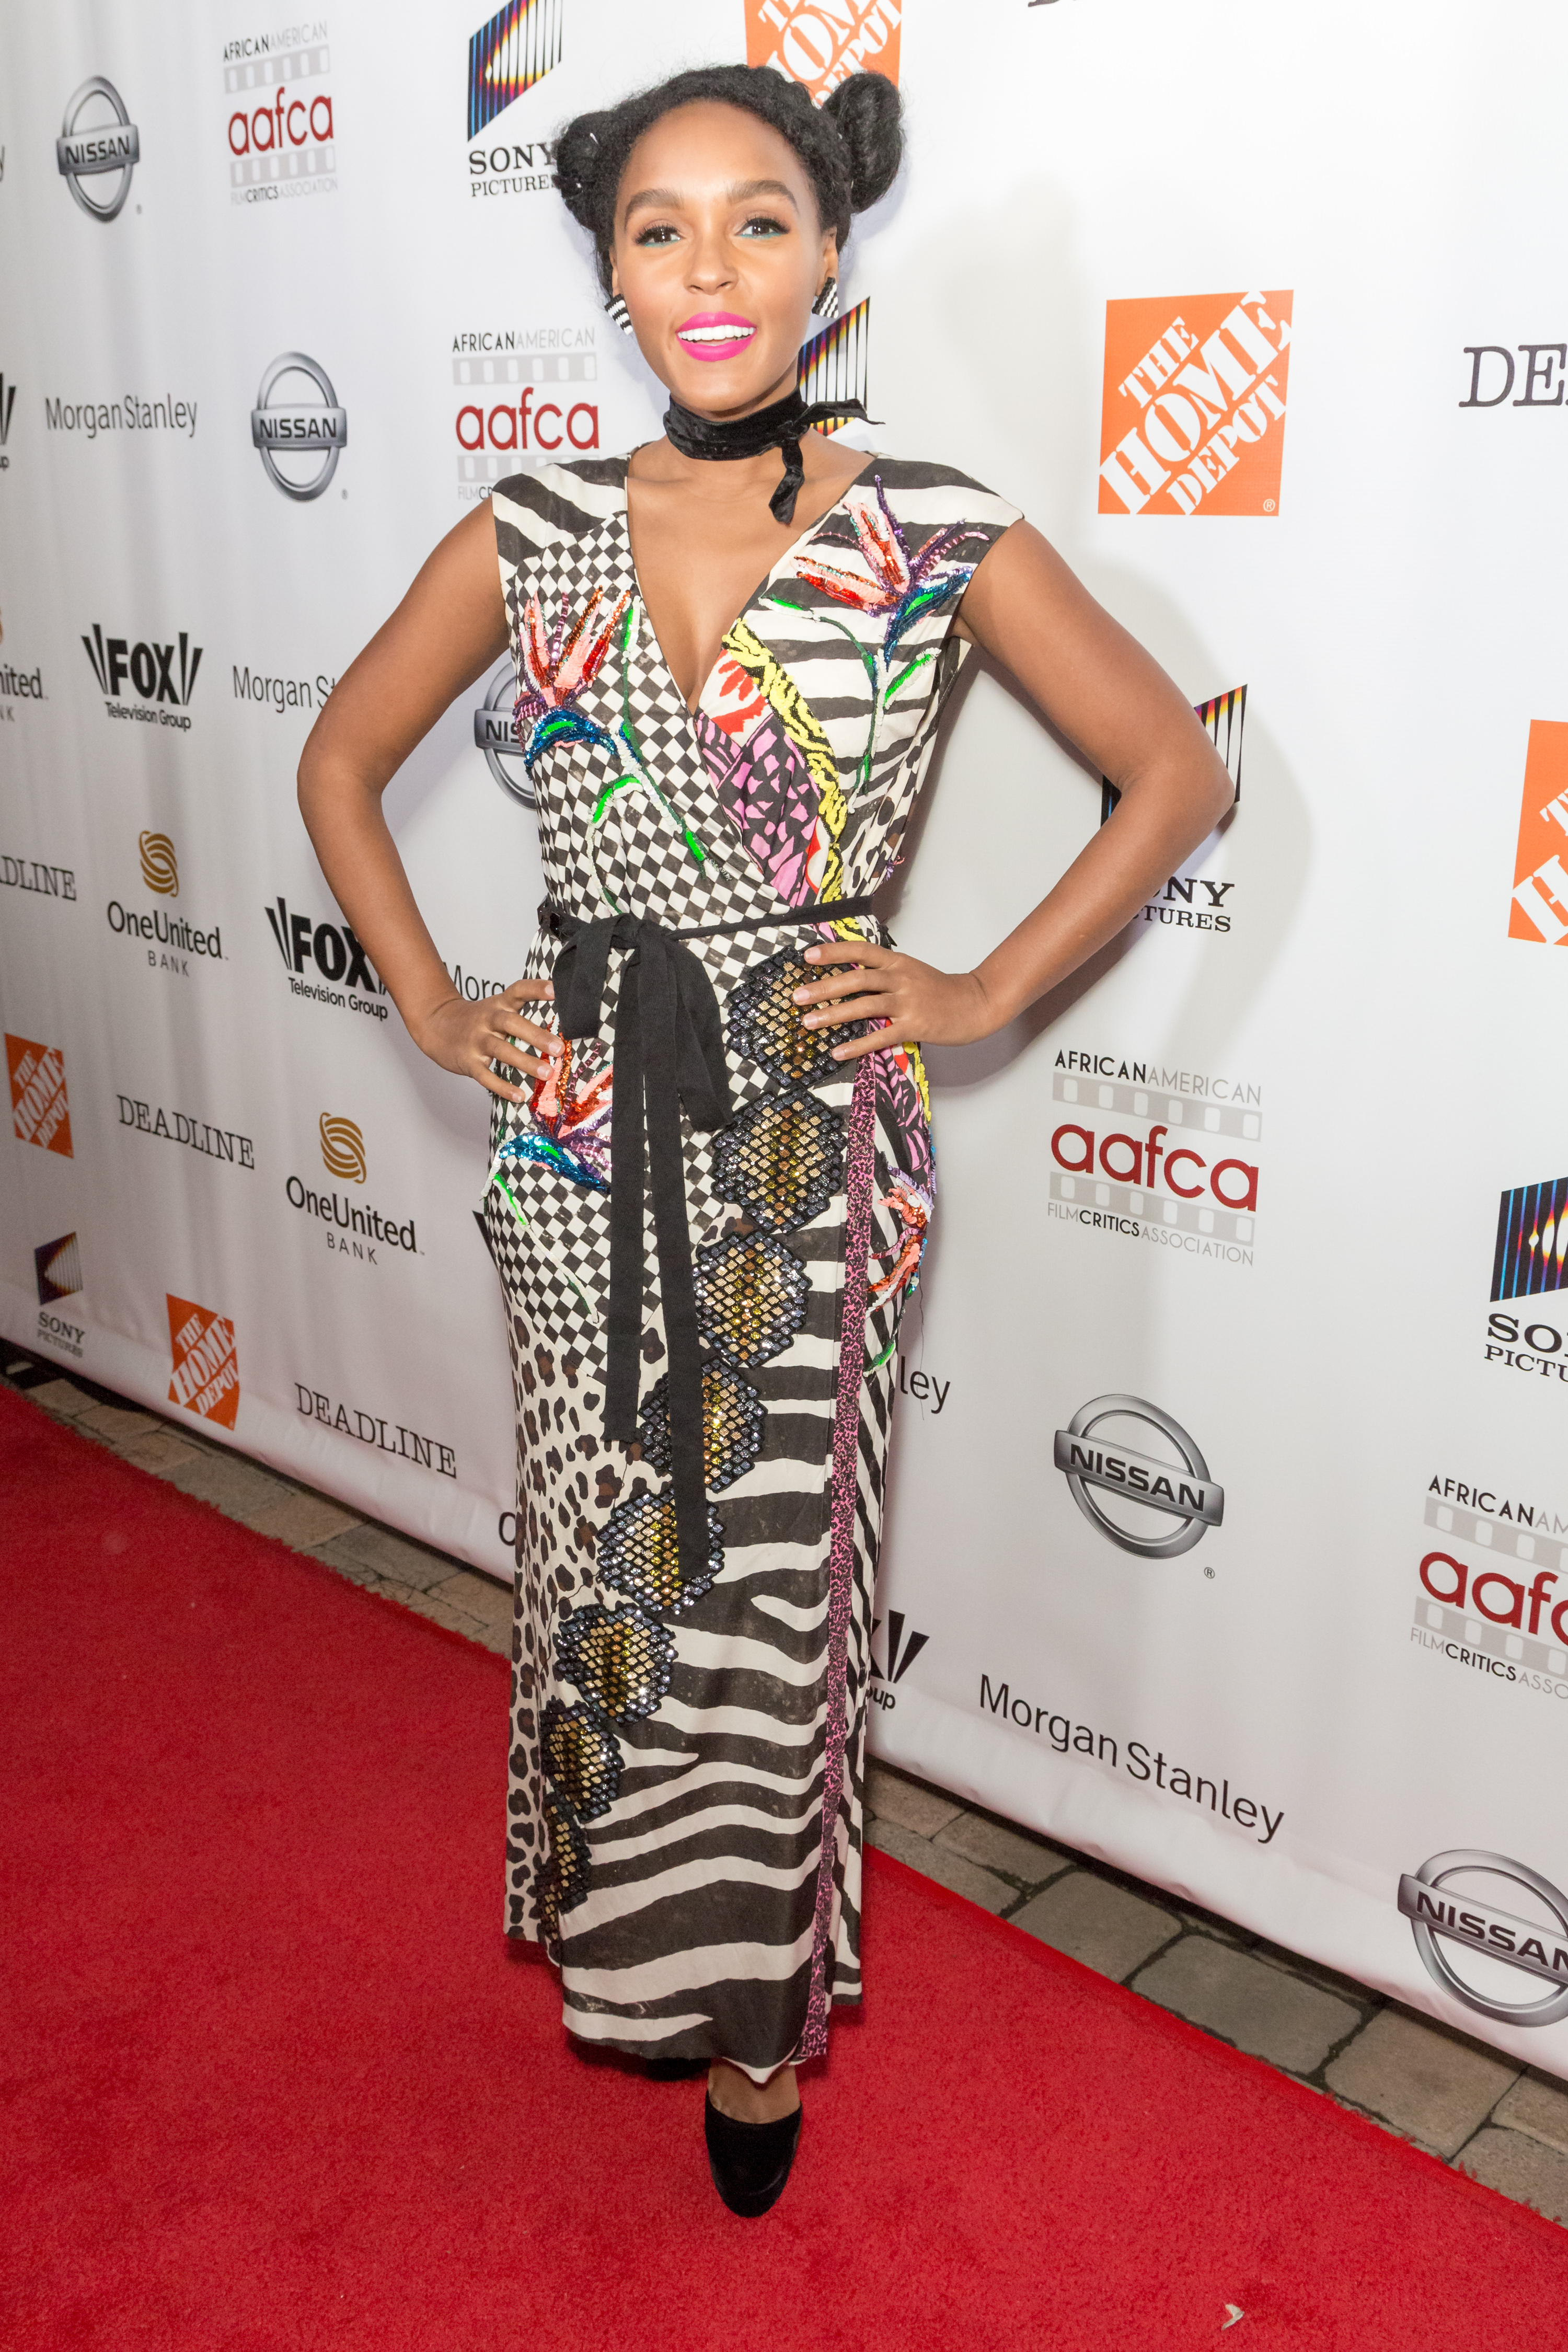 8th Annual AAFCA Awards - Red Carpet